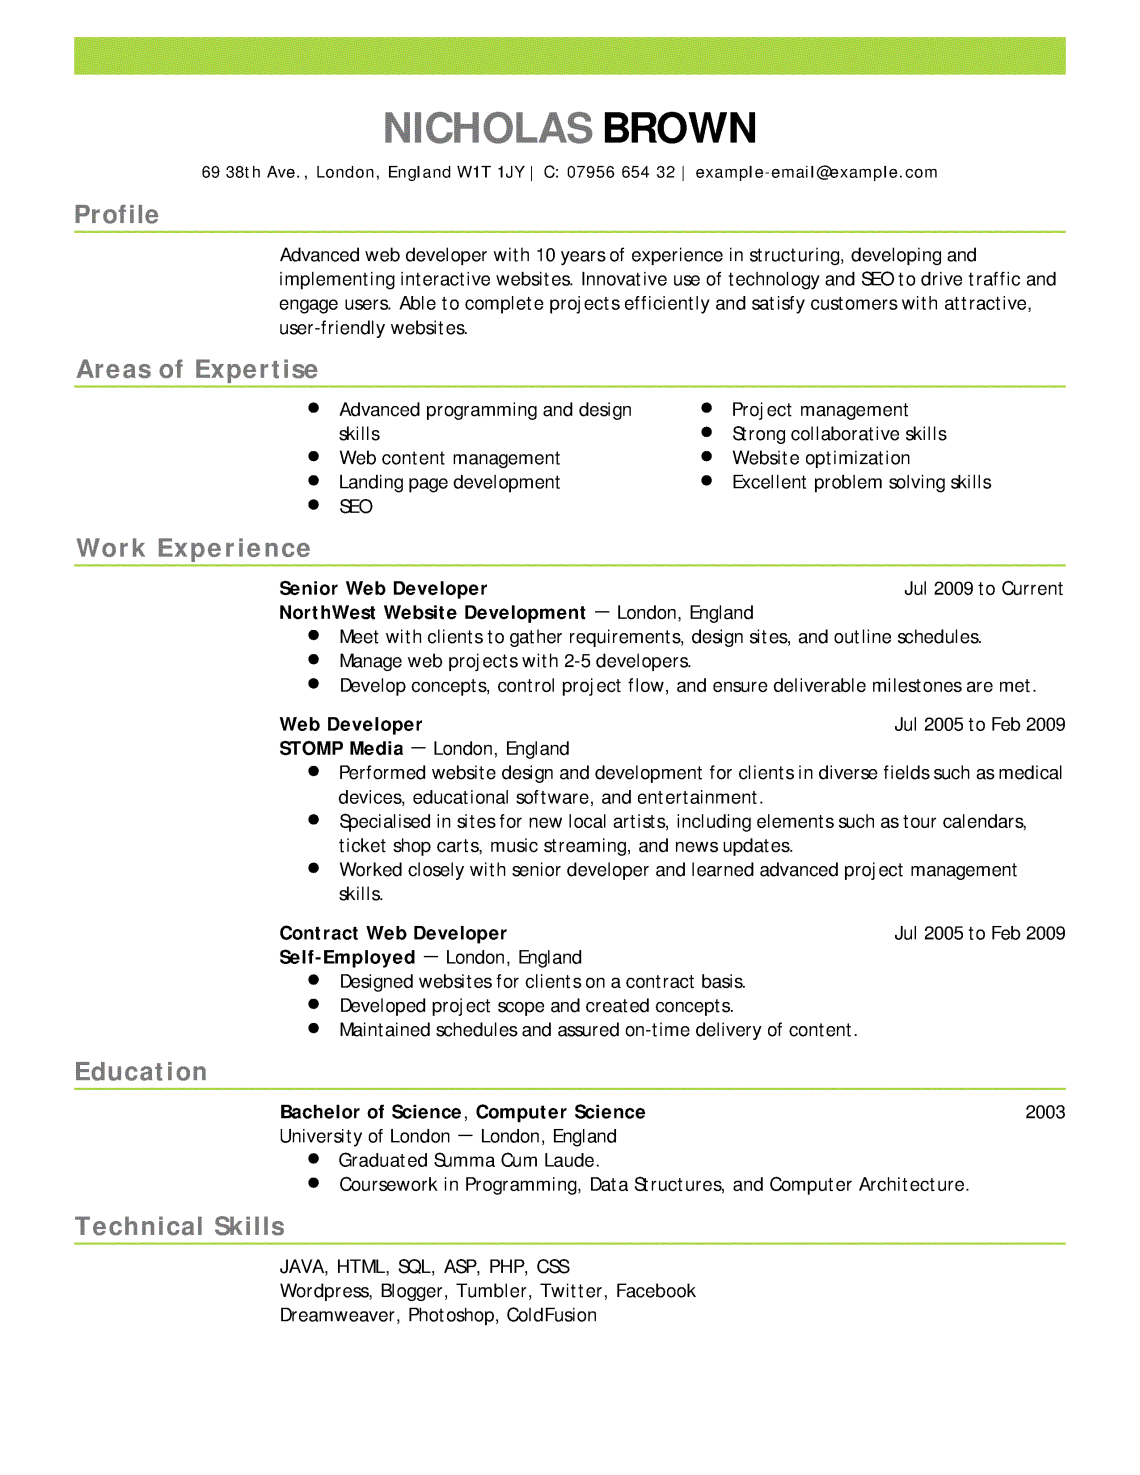 Breakupus Personable Resume Templates Amp Examples Industry How To     Resume Downloads